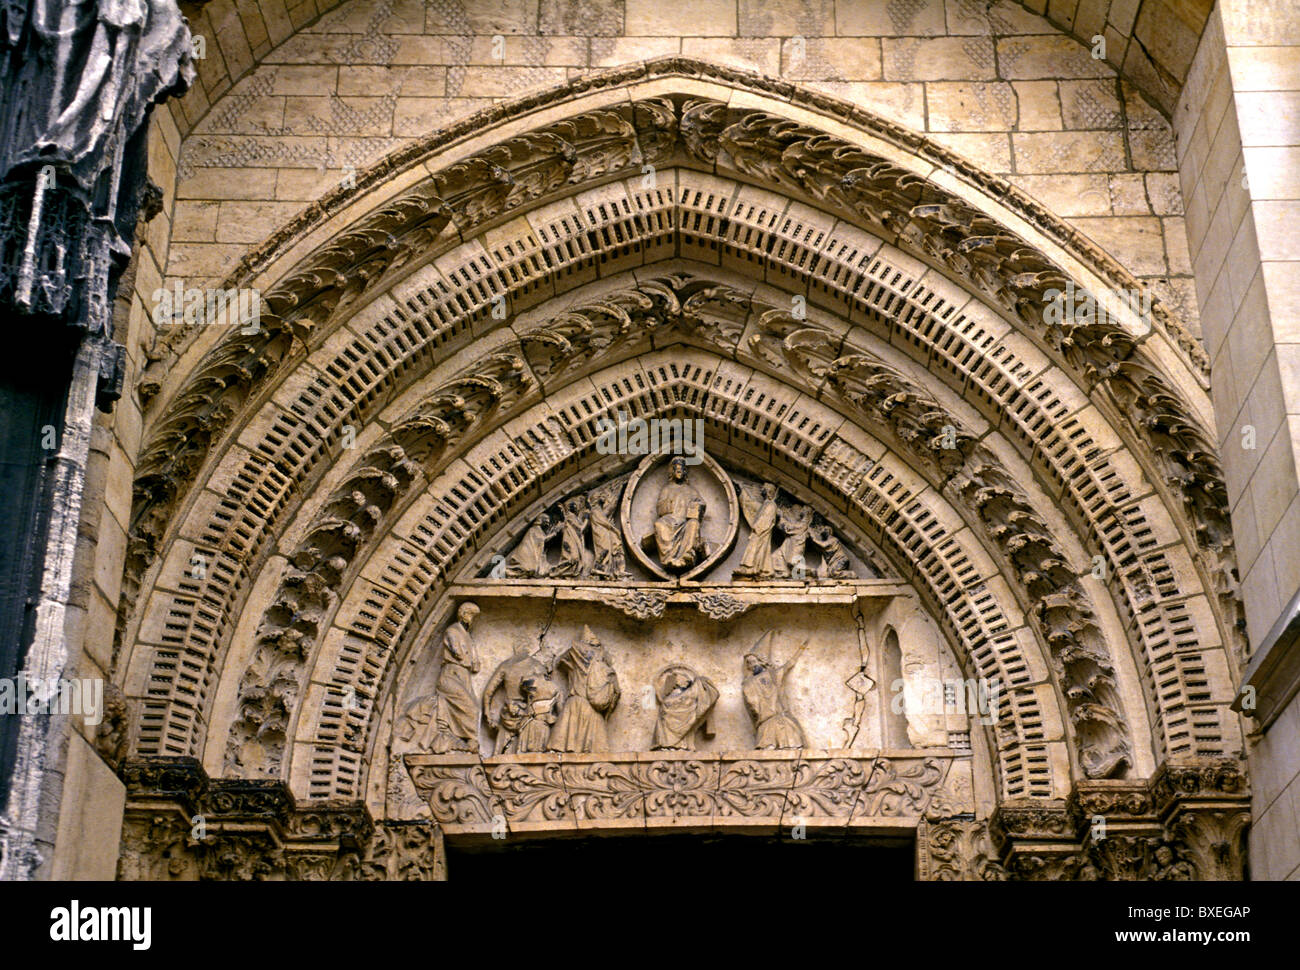 Tympanum Notre Dame Cathedral French Gothic Architecture City Of Rouen Upper Normandy France Europe